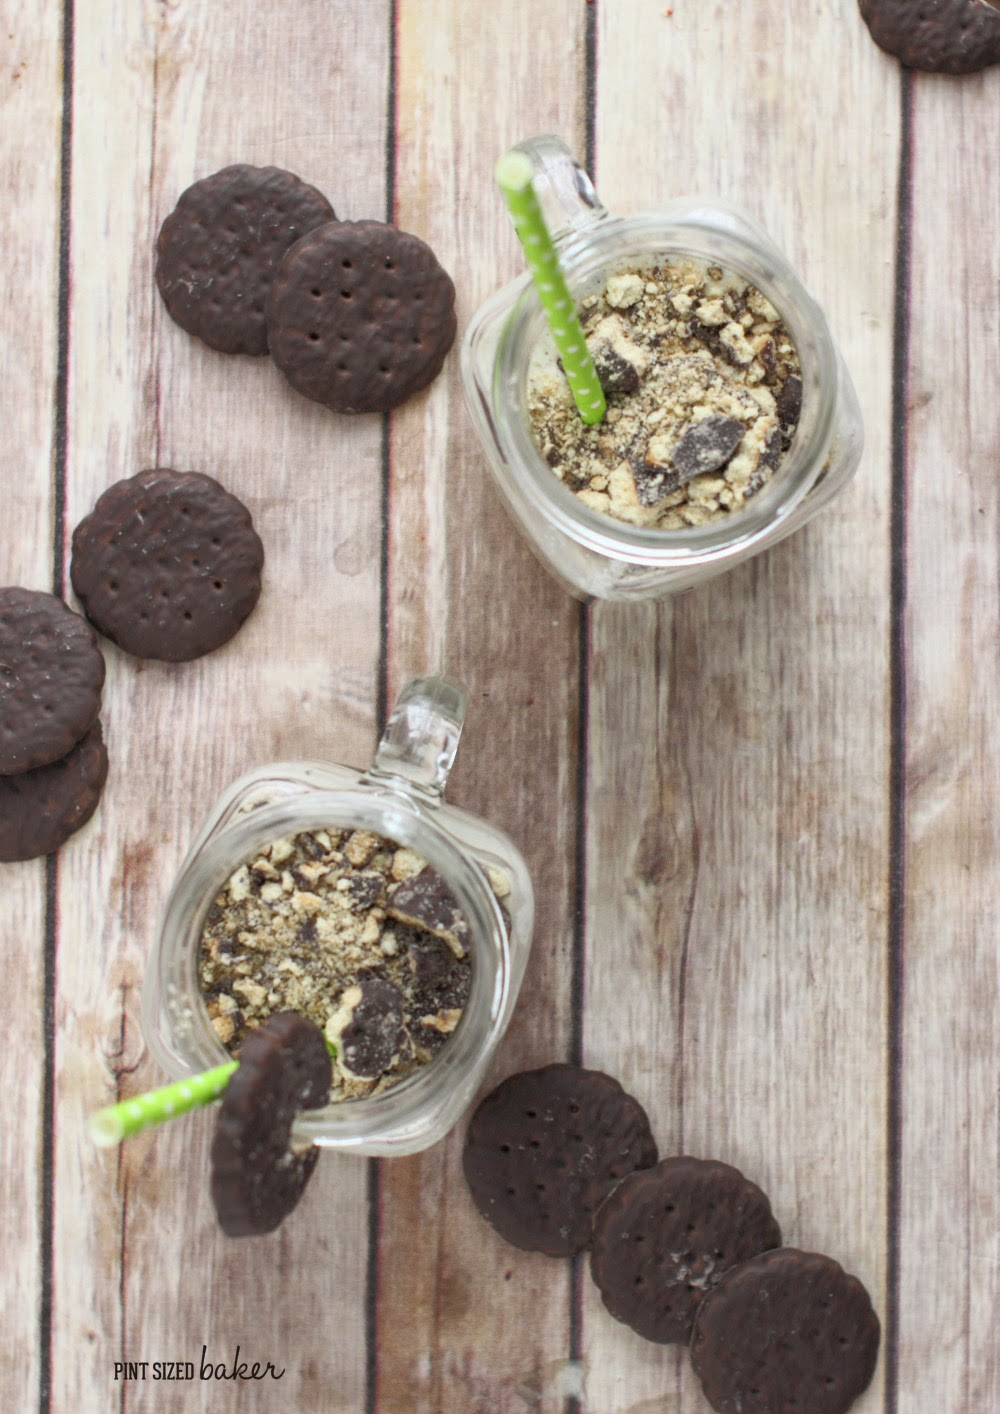 Quick, easy and delicious - I can't wait for Girl Scout Cookies every year so I can make a Thin Mint Cookie Milkshake!